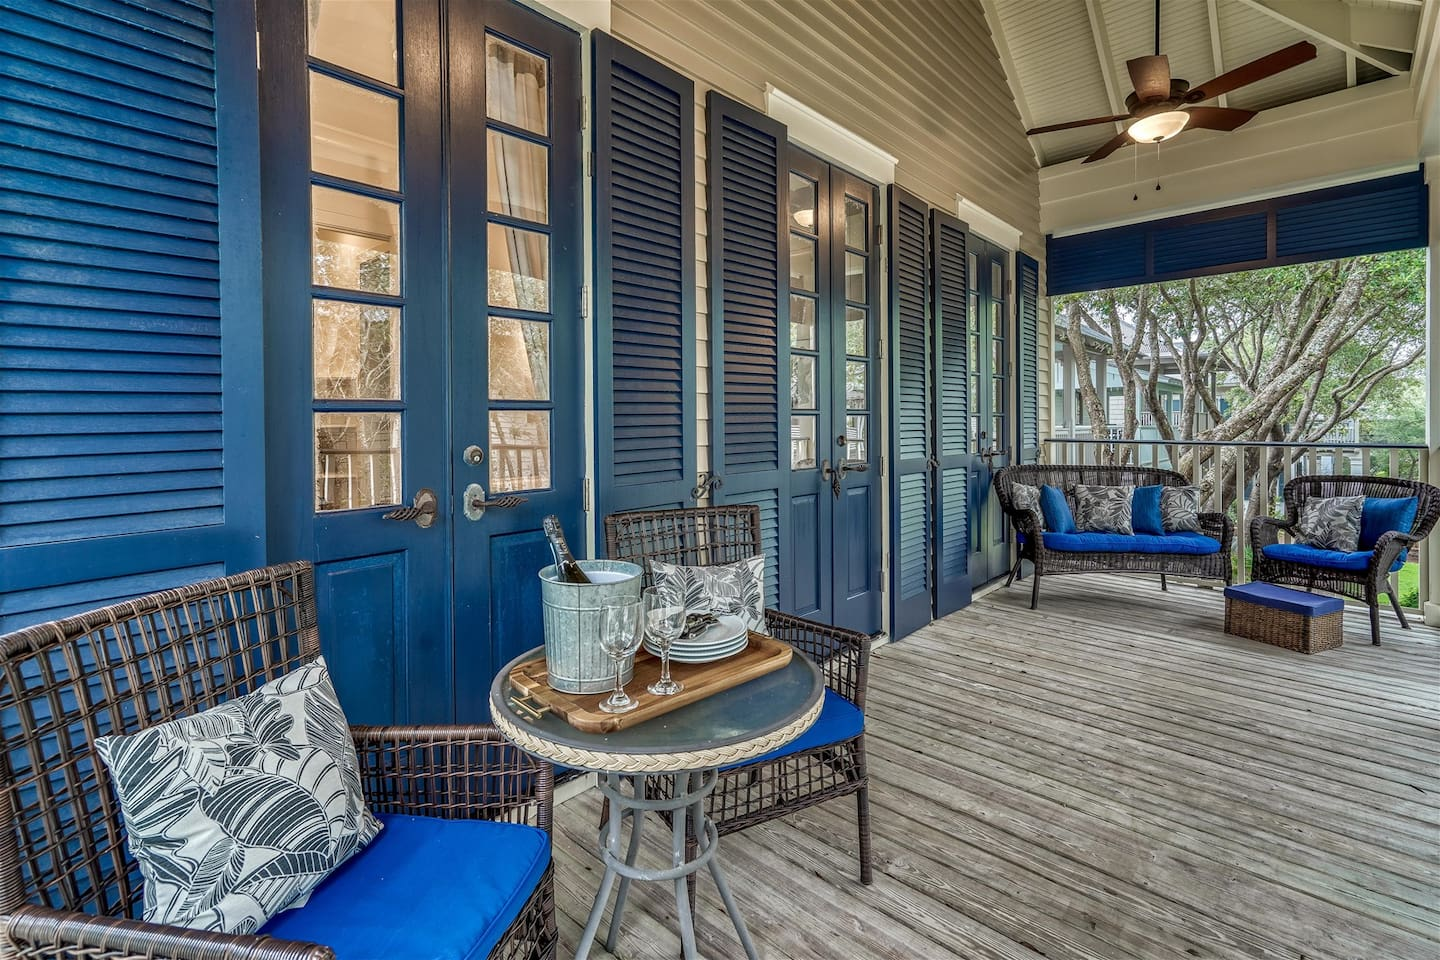 2nd Floor Balcony - Furnished with Cozy Outdoor Furnishings